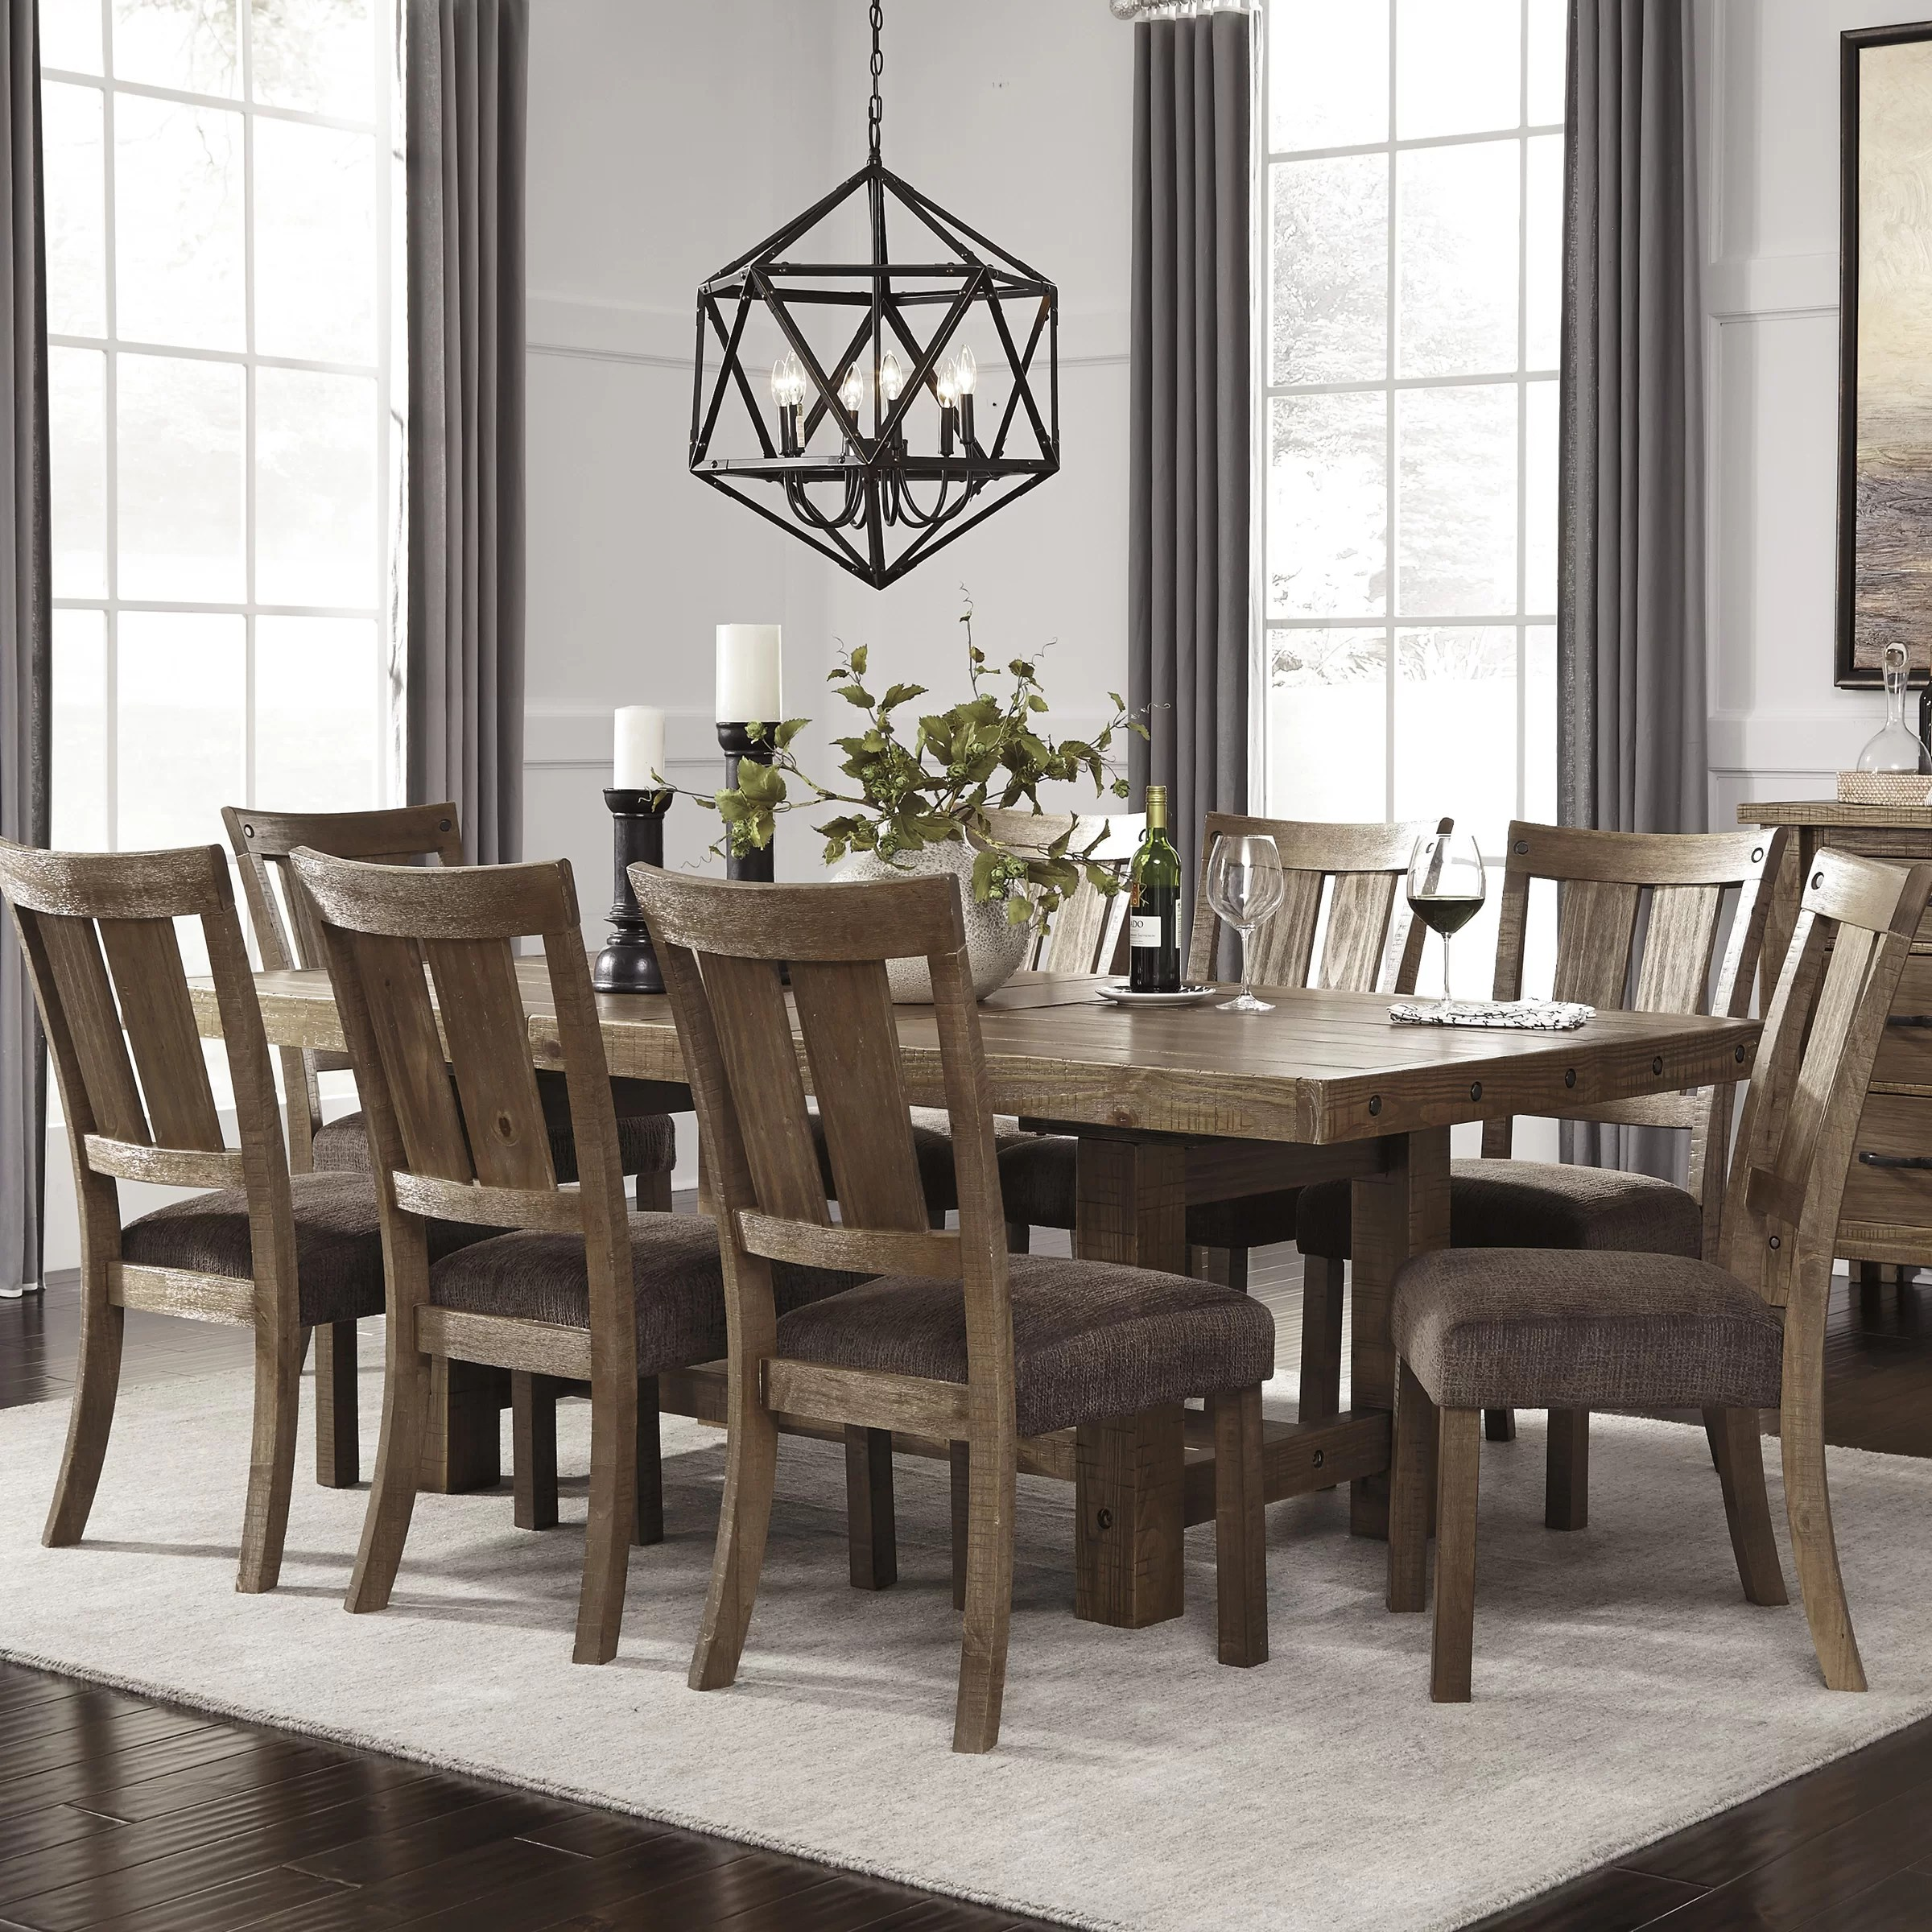 Signature Design by Ashley 9 Piece Dining Set  Reviews